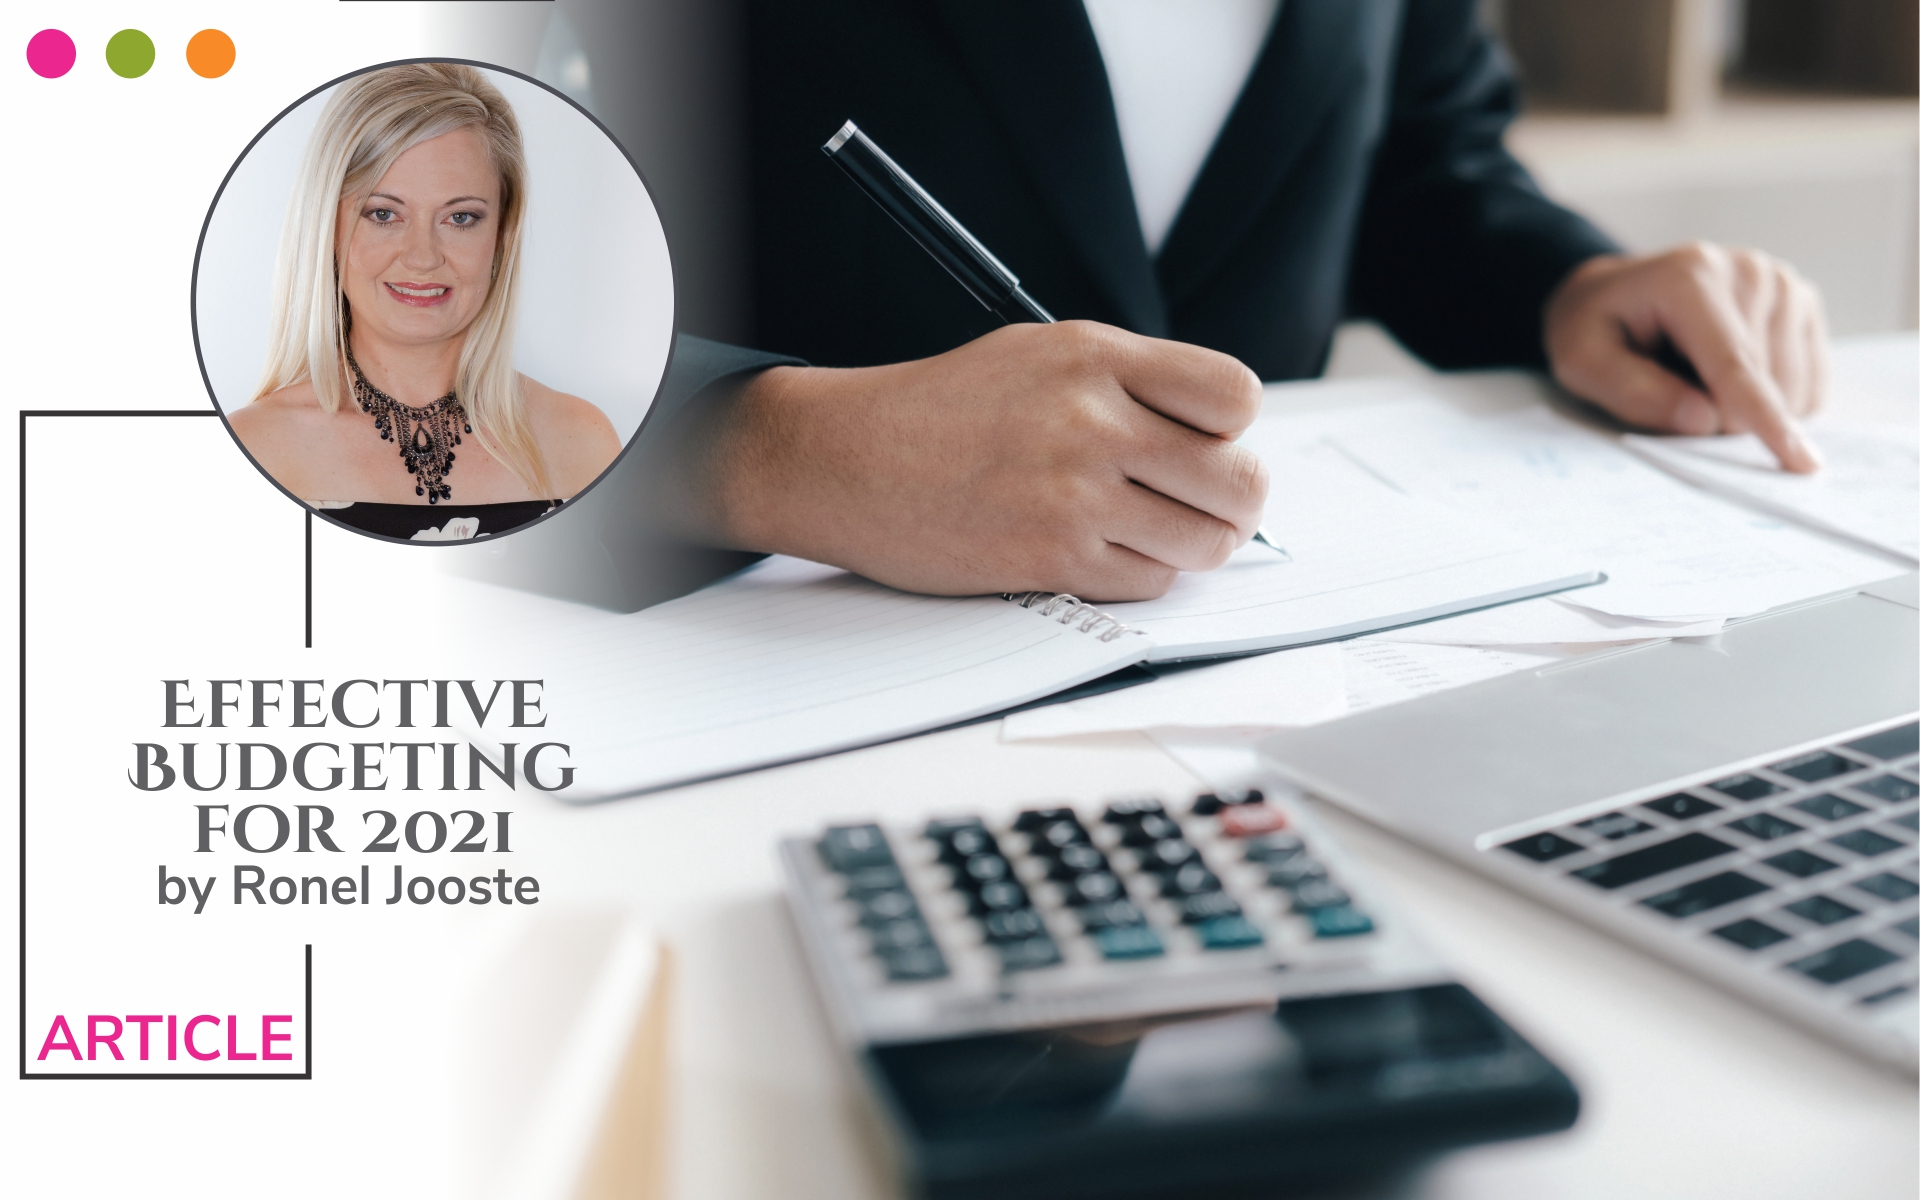 Financial Wellbeing according to Ronel Jooste